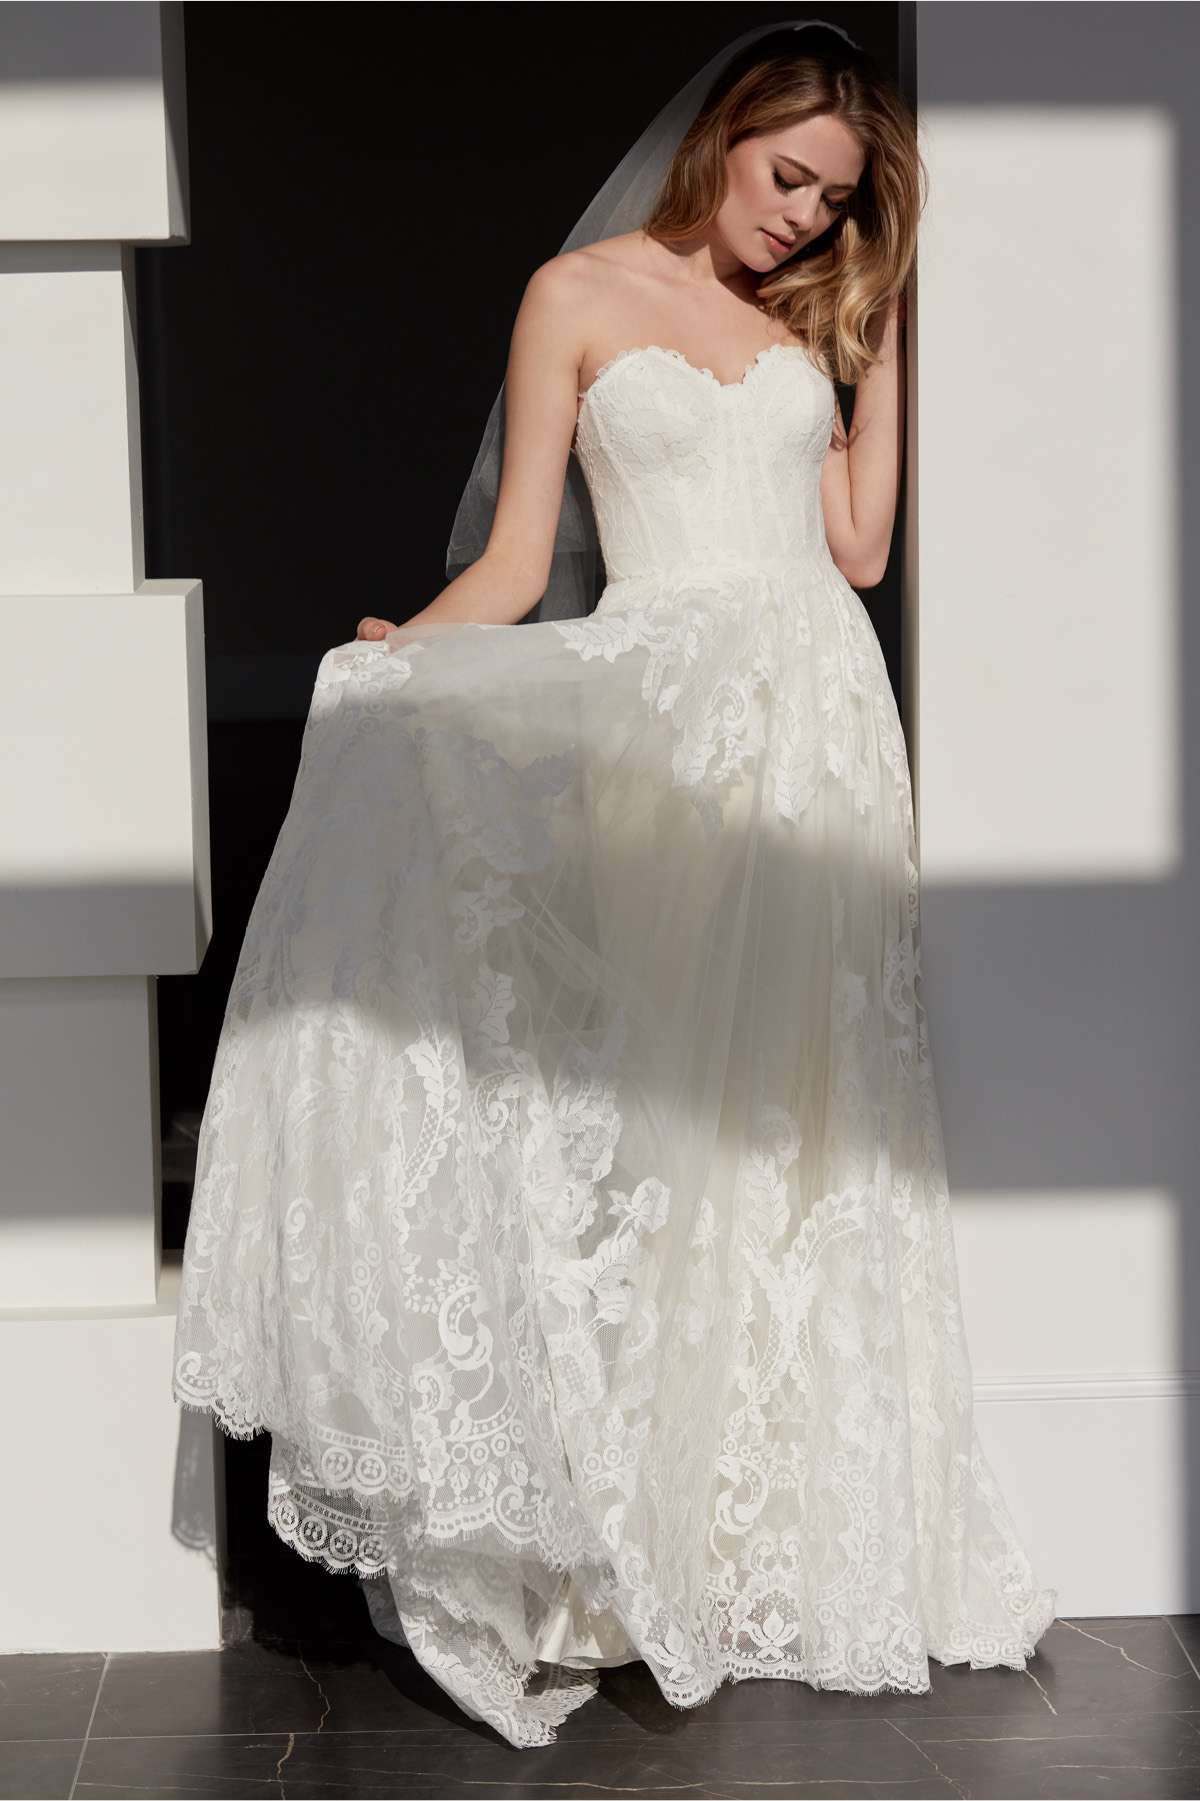 Model in strapless allover lace wedding gown